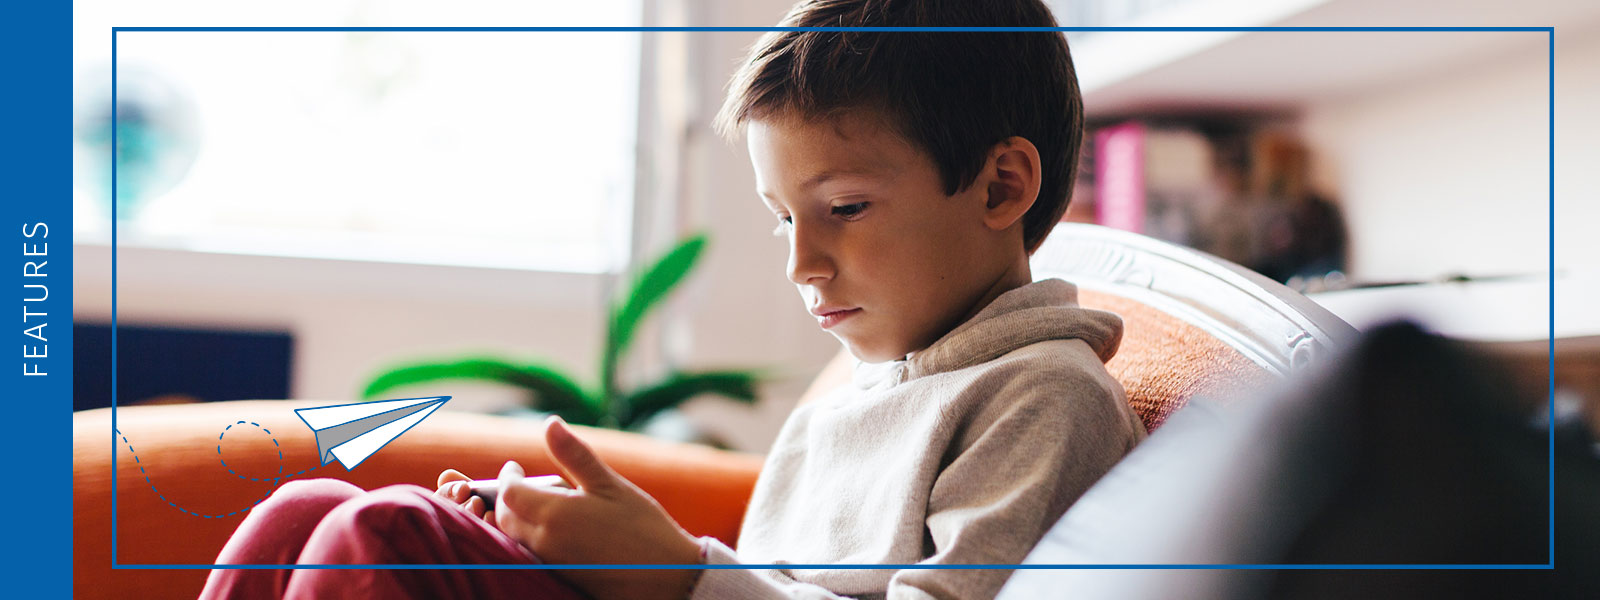 A young boy sits on a couch totally engaged in the Accessit library system that he is accessing from his tablet device